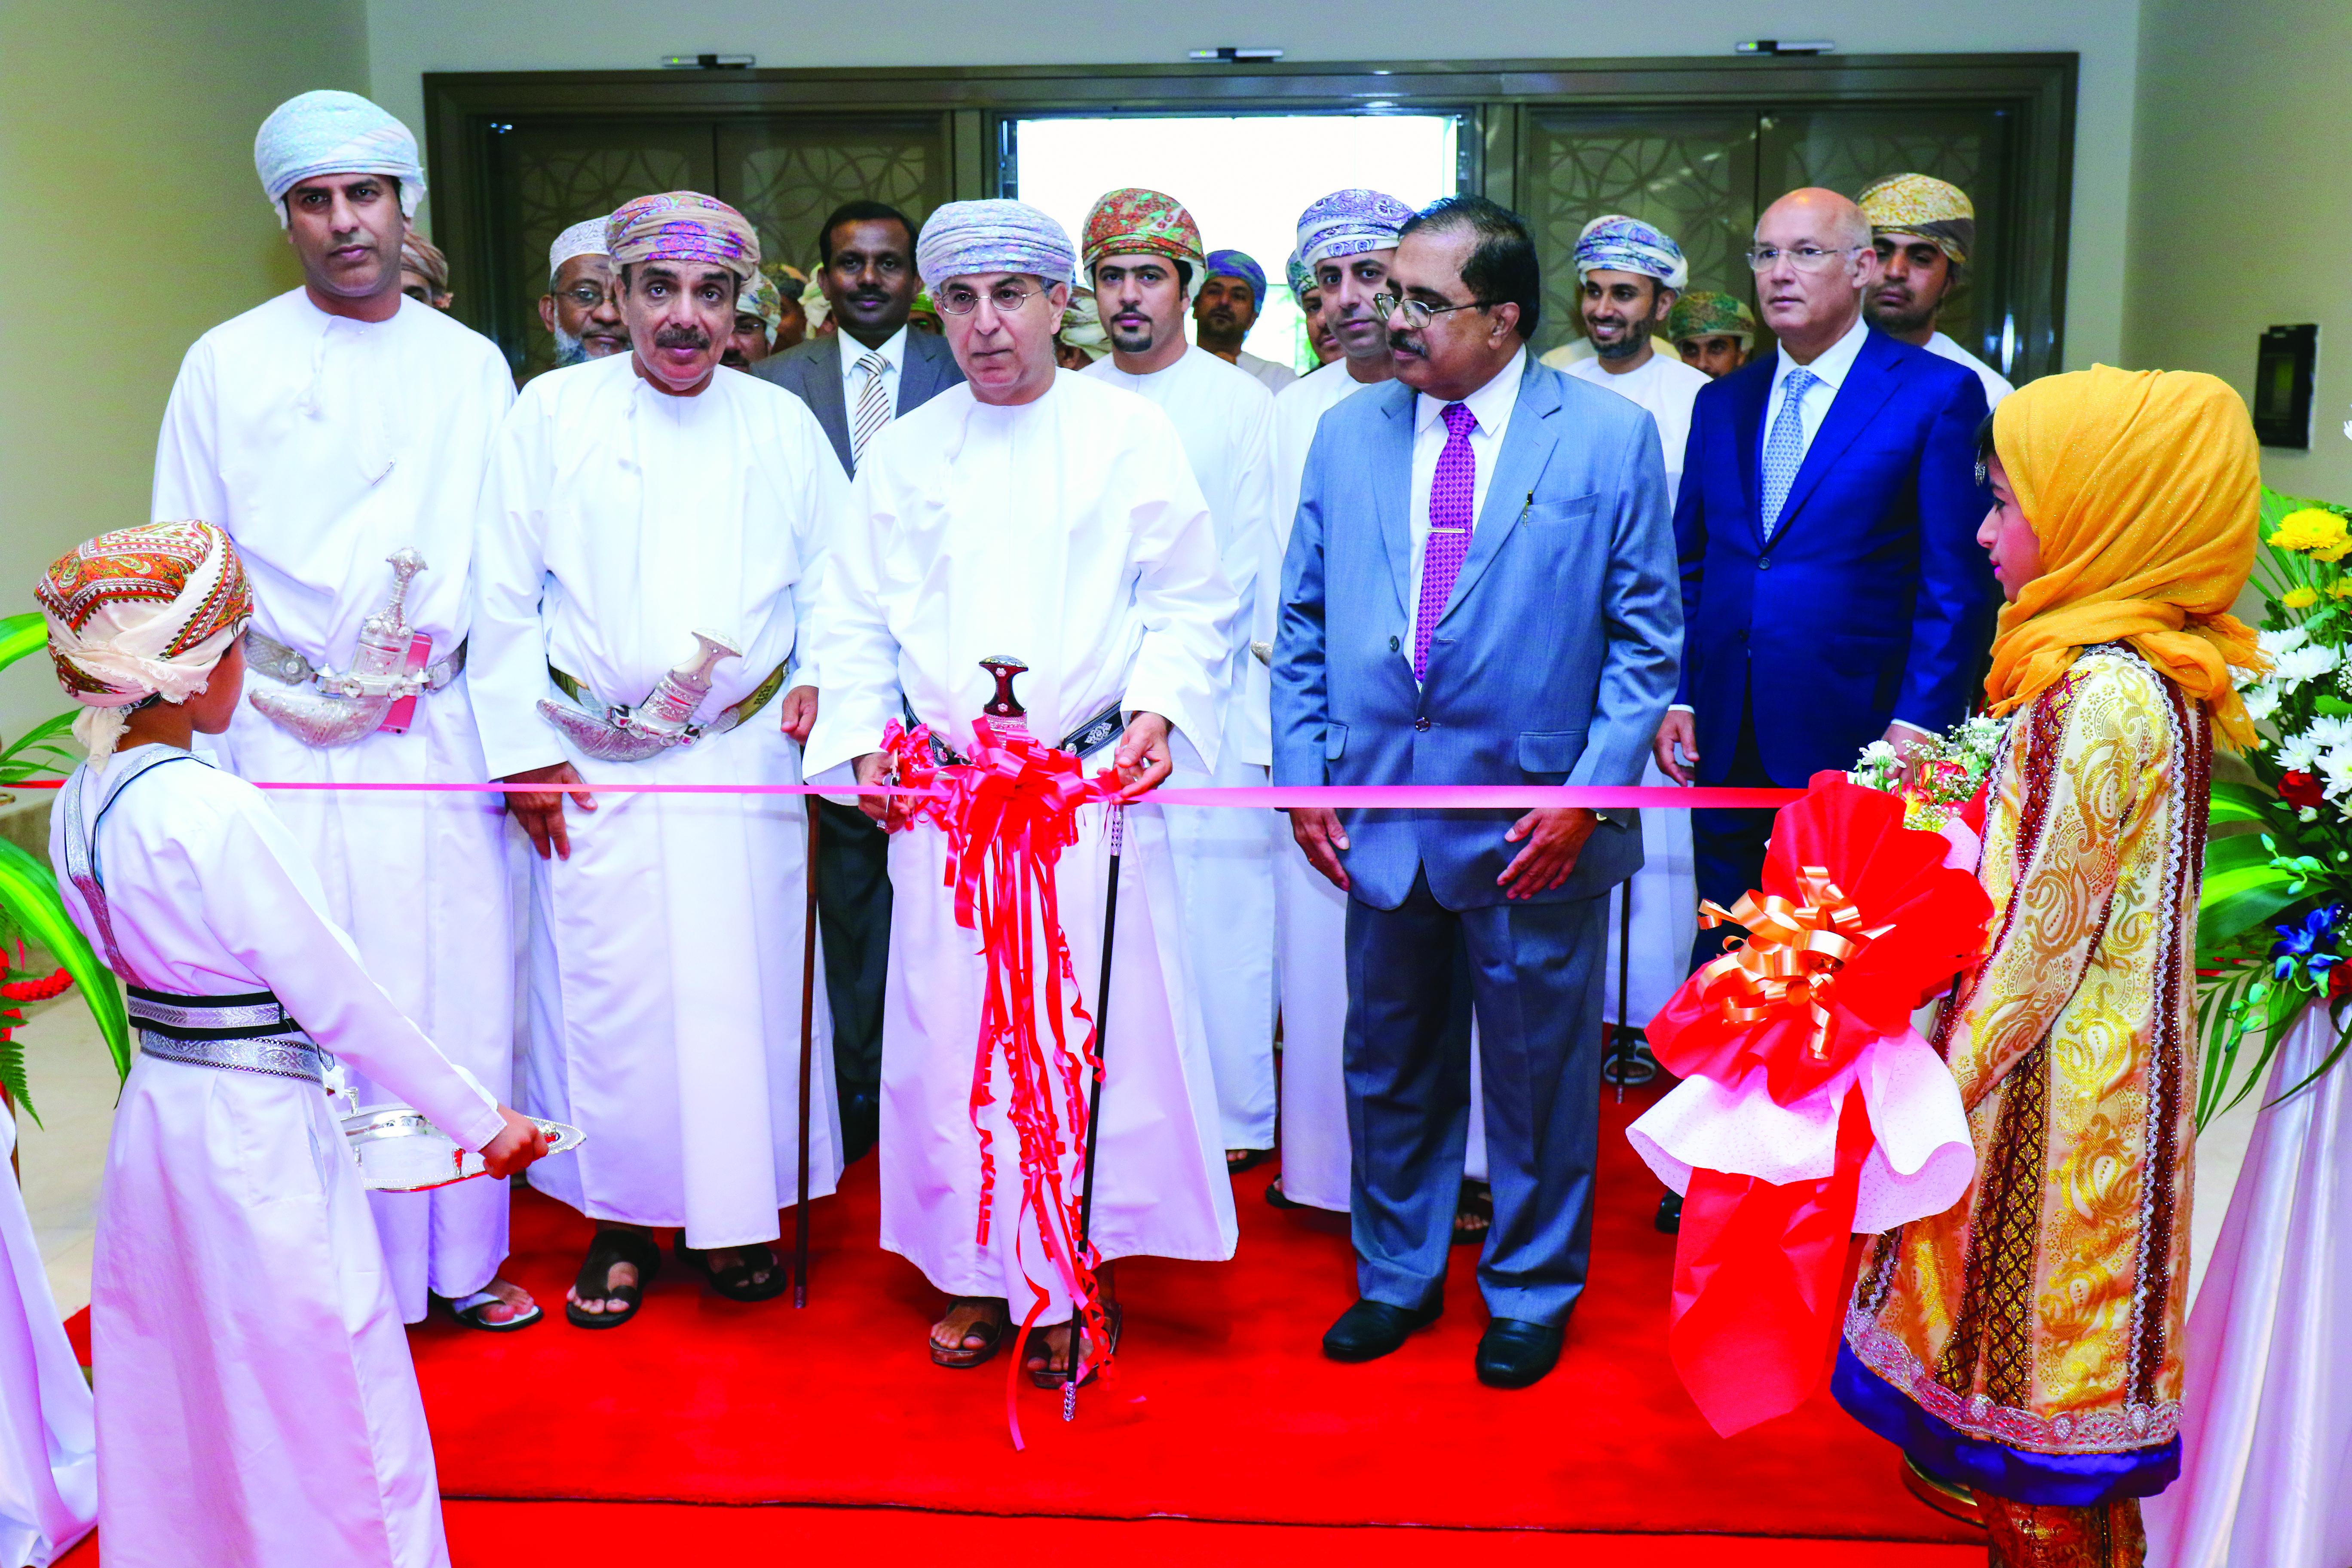 Oman Plast exhibition showcases state-of-the-art products